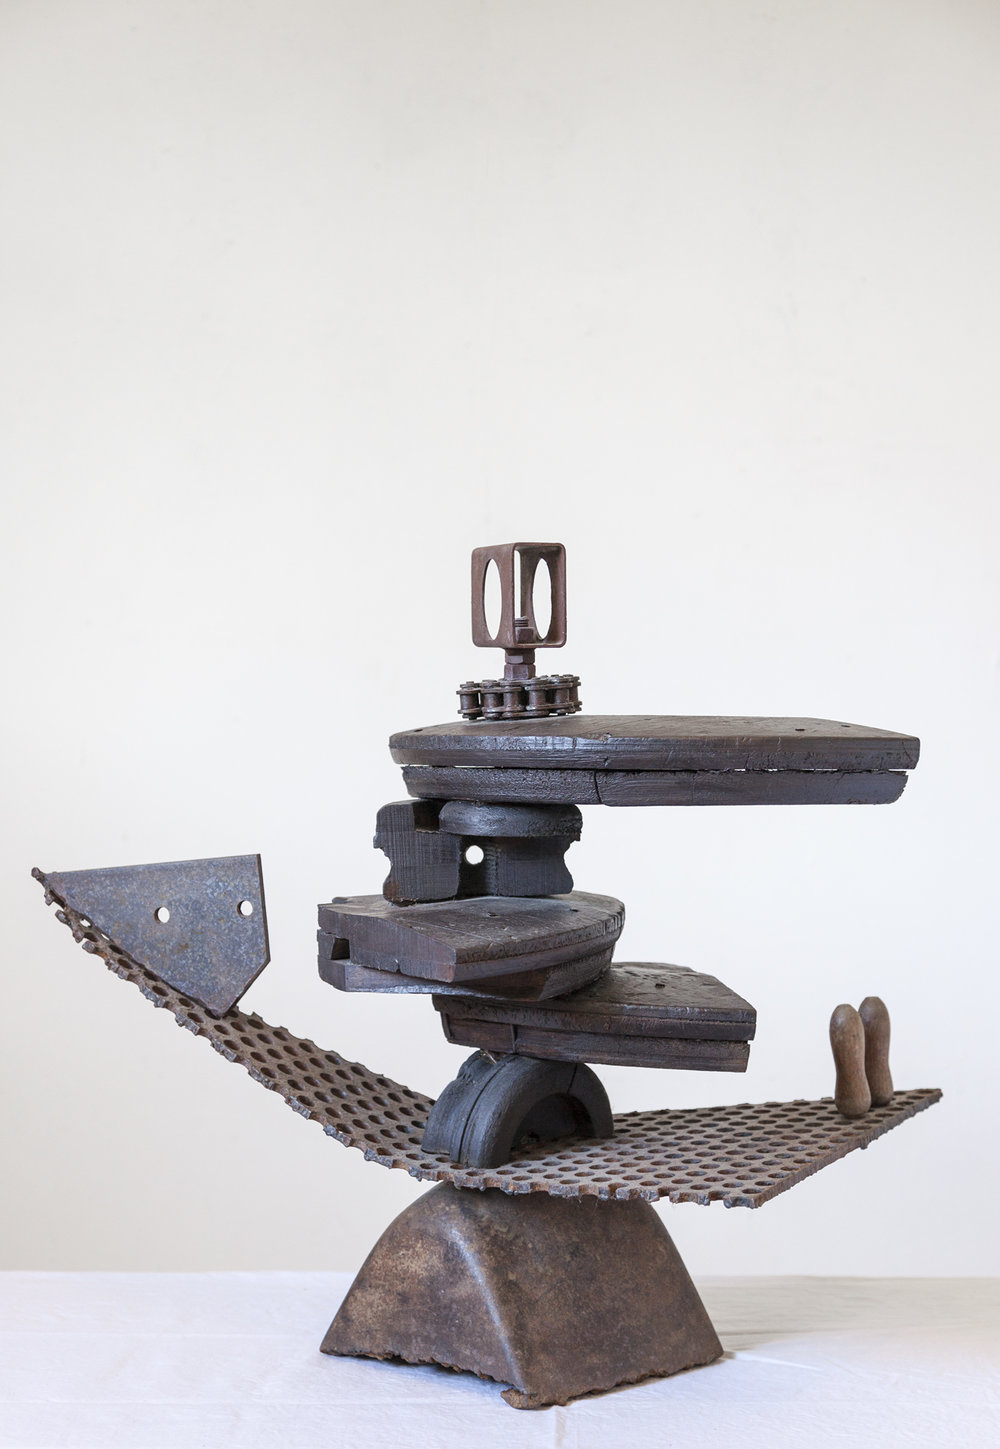 Randal-Arvilla-Mechanism-Sculpture